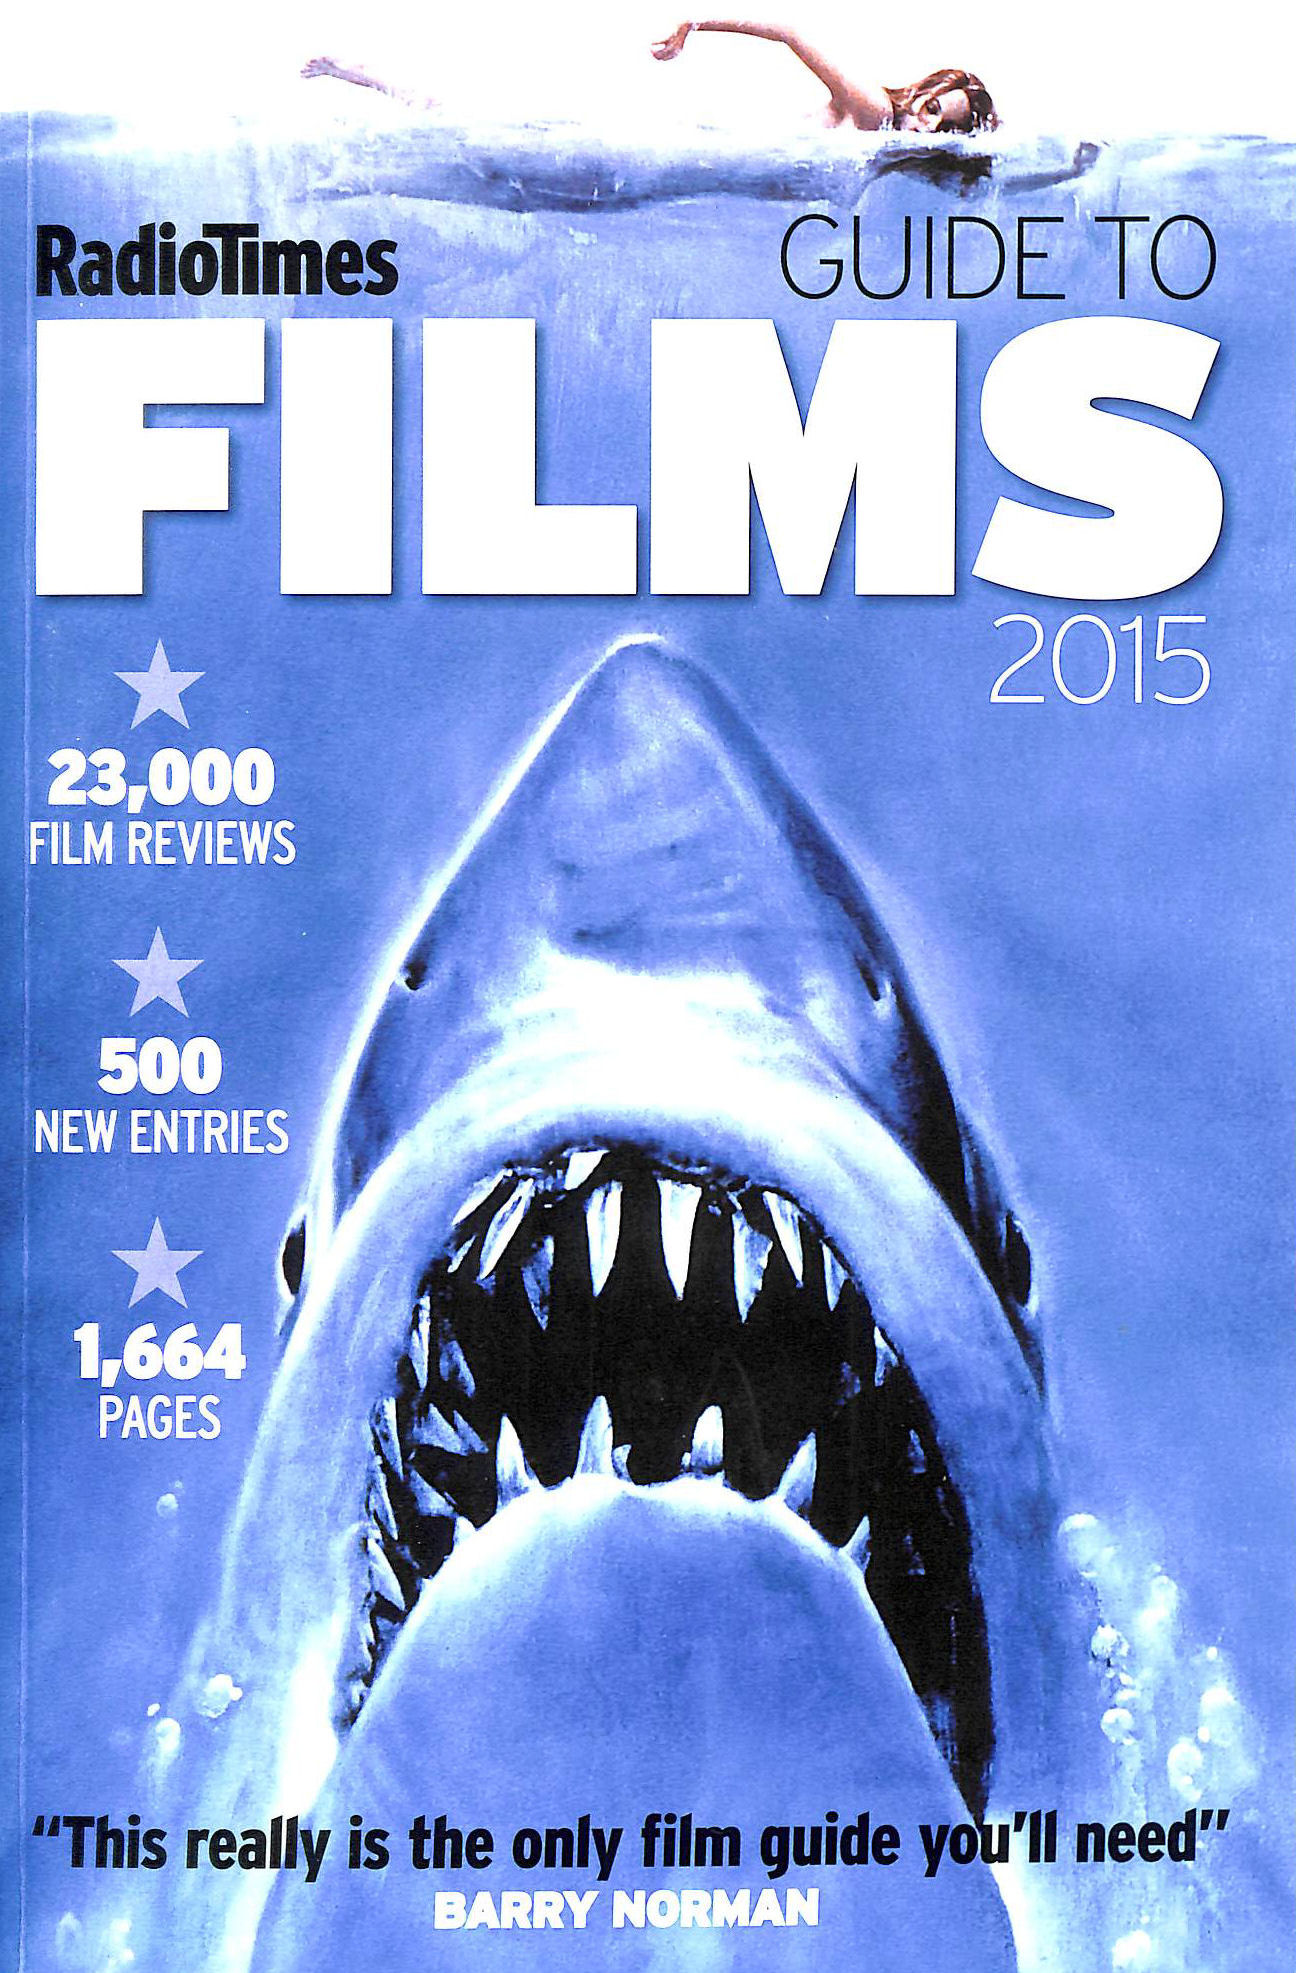 Image for The Radio Times Guide To Films 2015